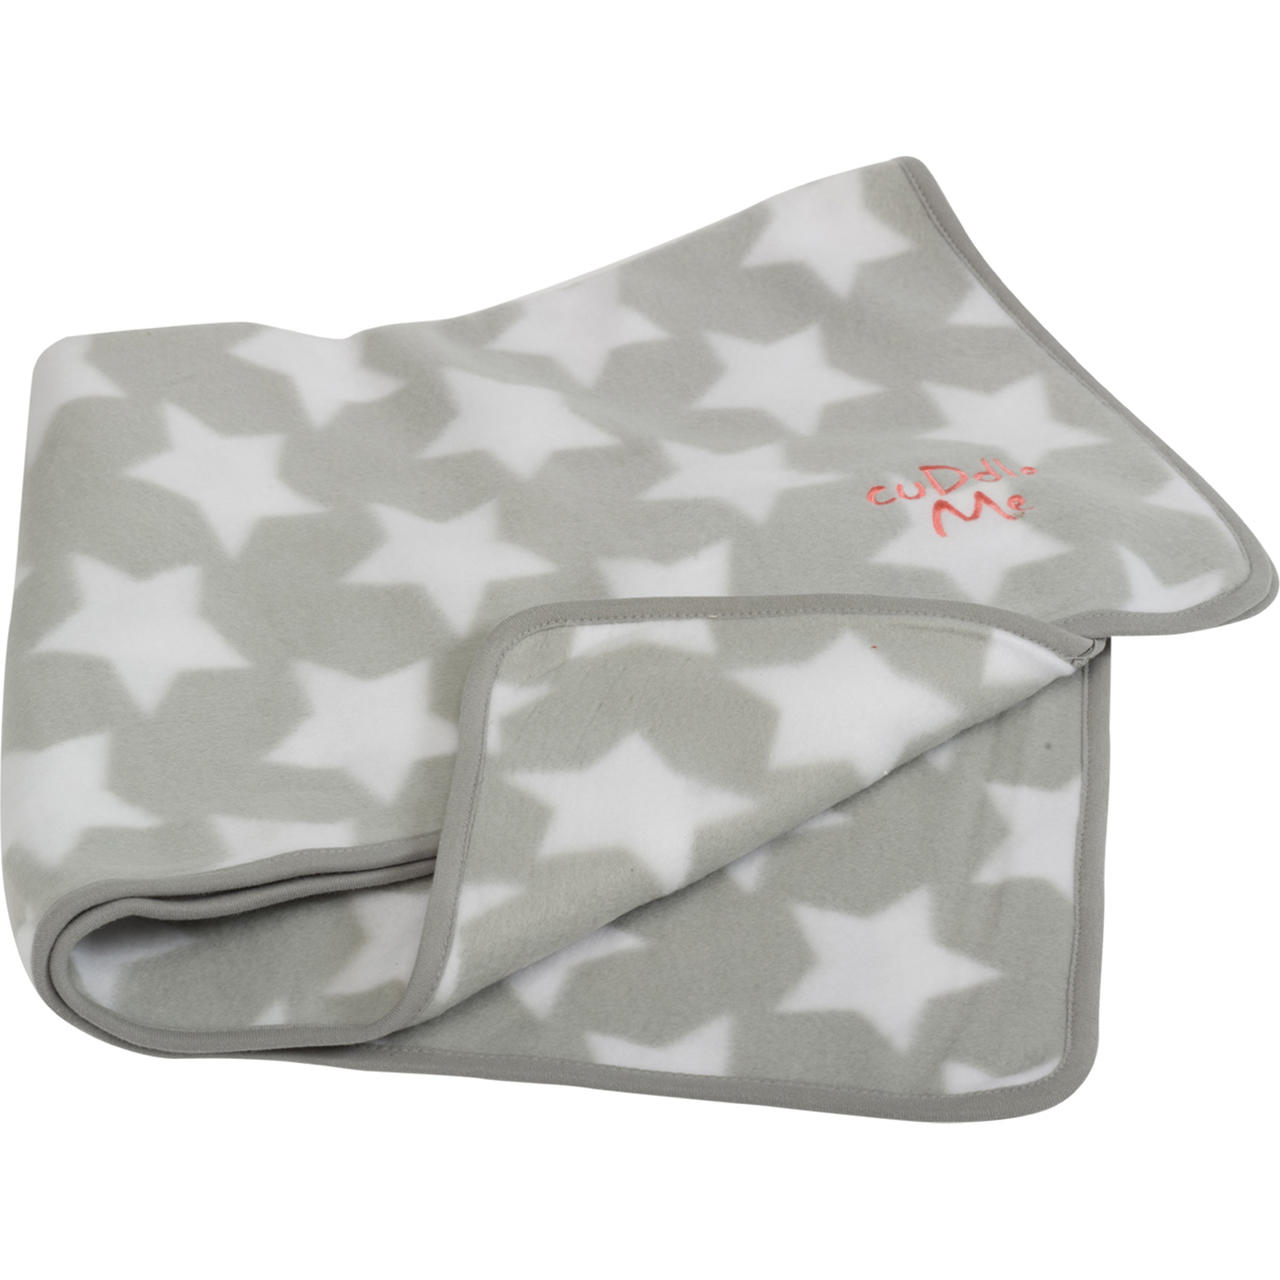 Little Petface puppy comforter blanket with a grey background and white star pattern